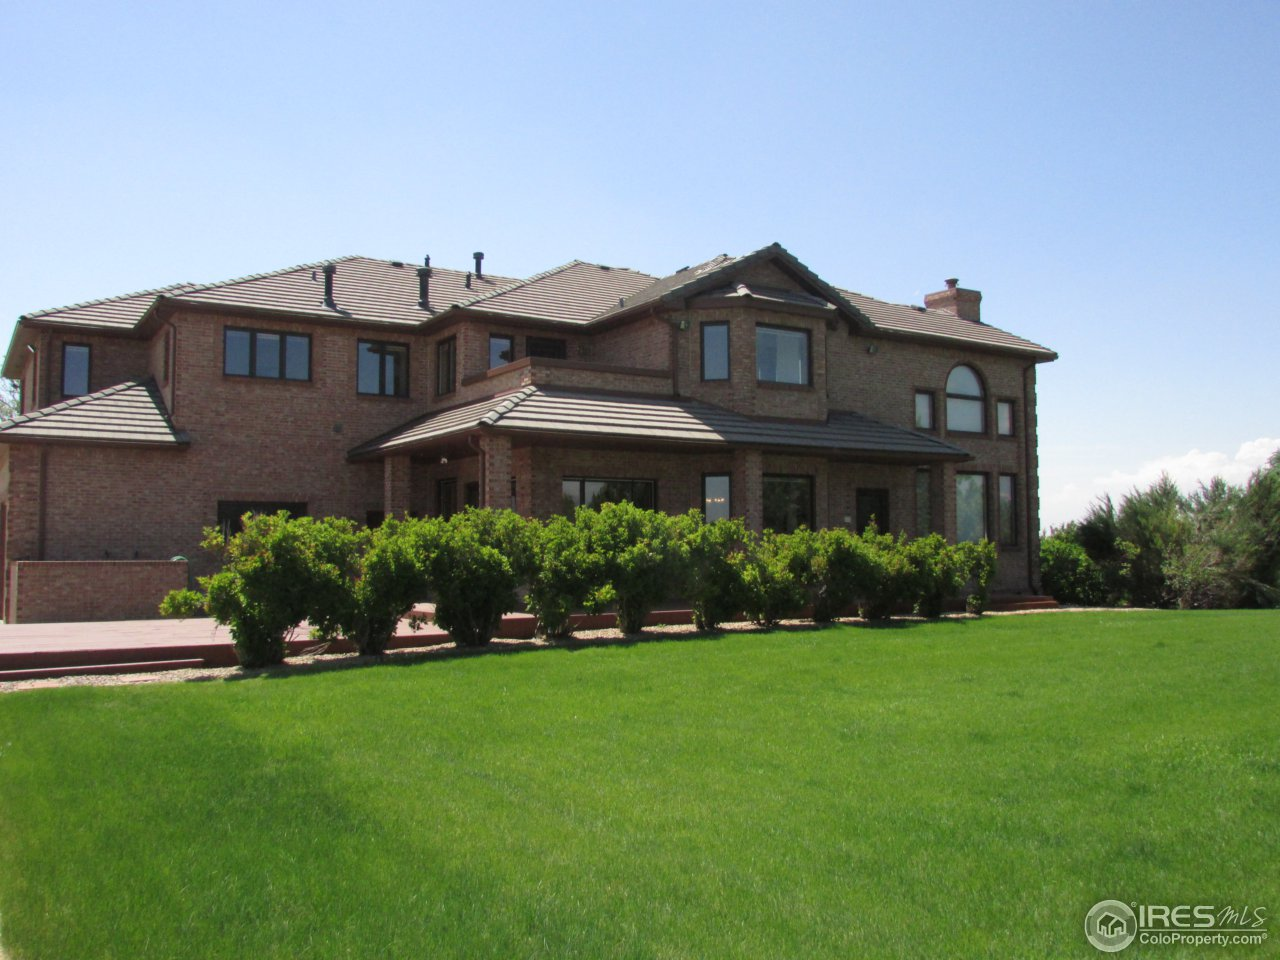 13676 Vermillion Trl, Longmont, CO 80504